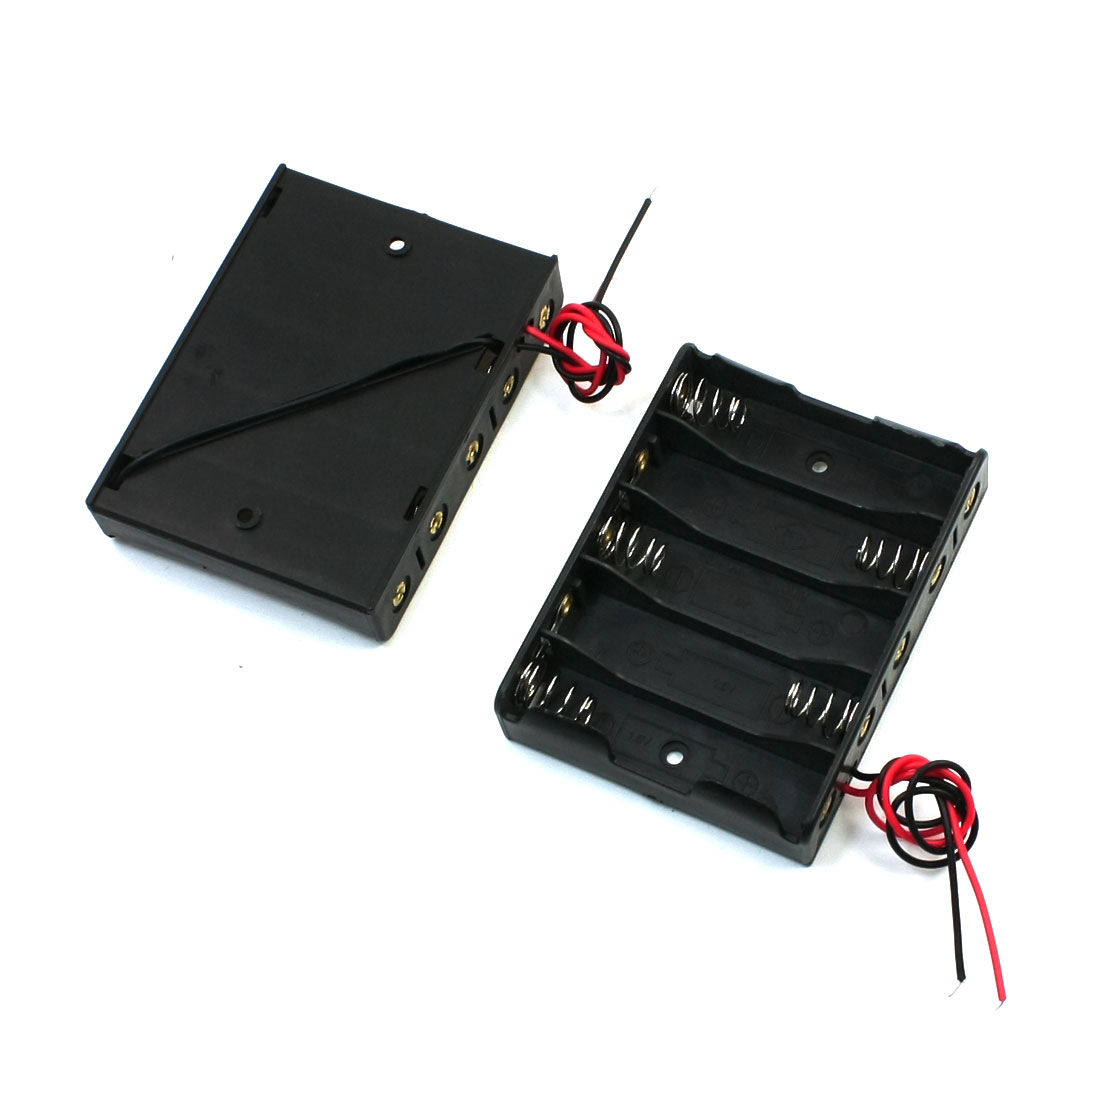 5 x 1.5V AAA Battery Slot Holder Case Box Wire Black 2pcs